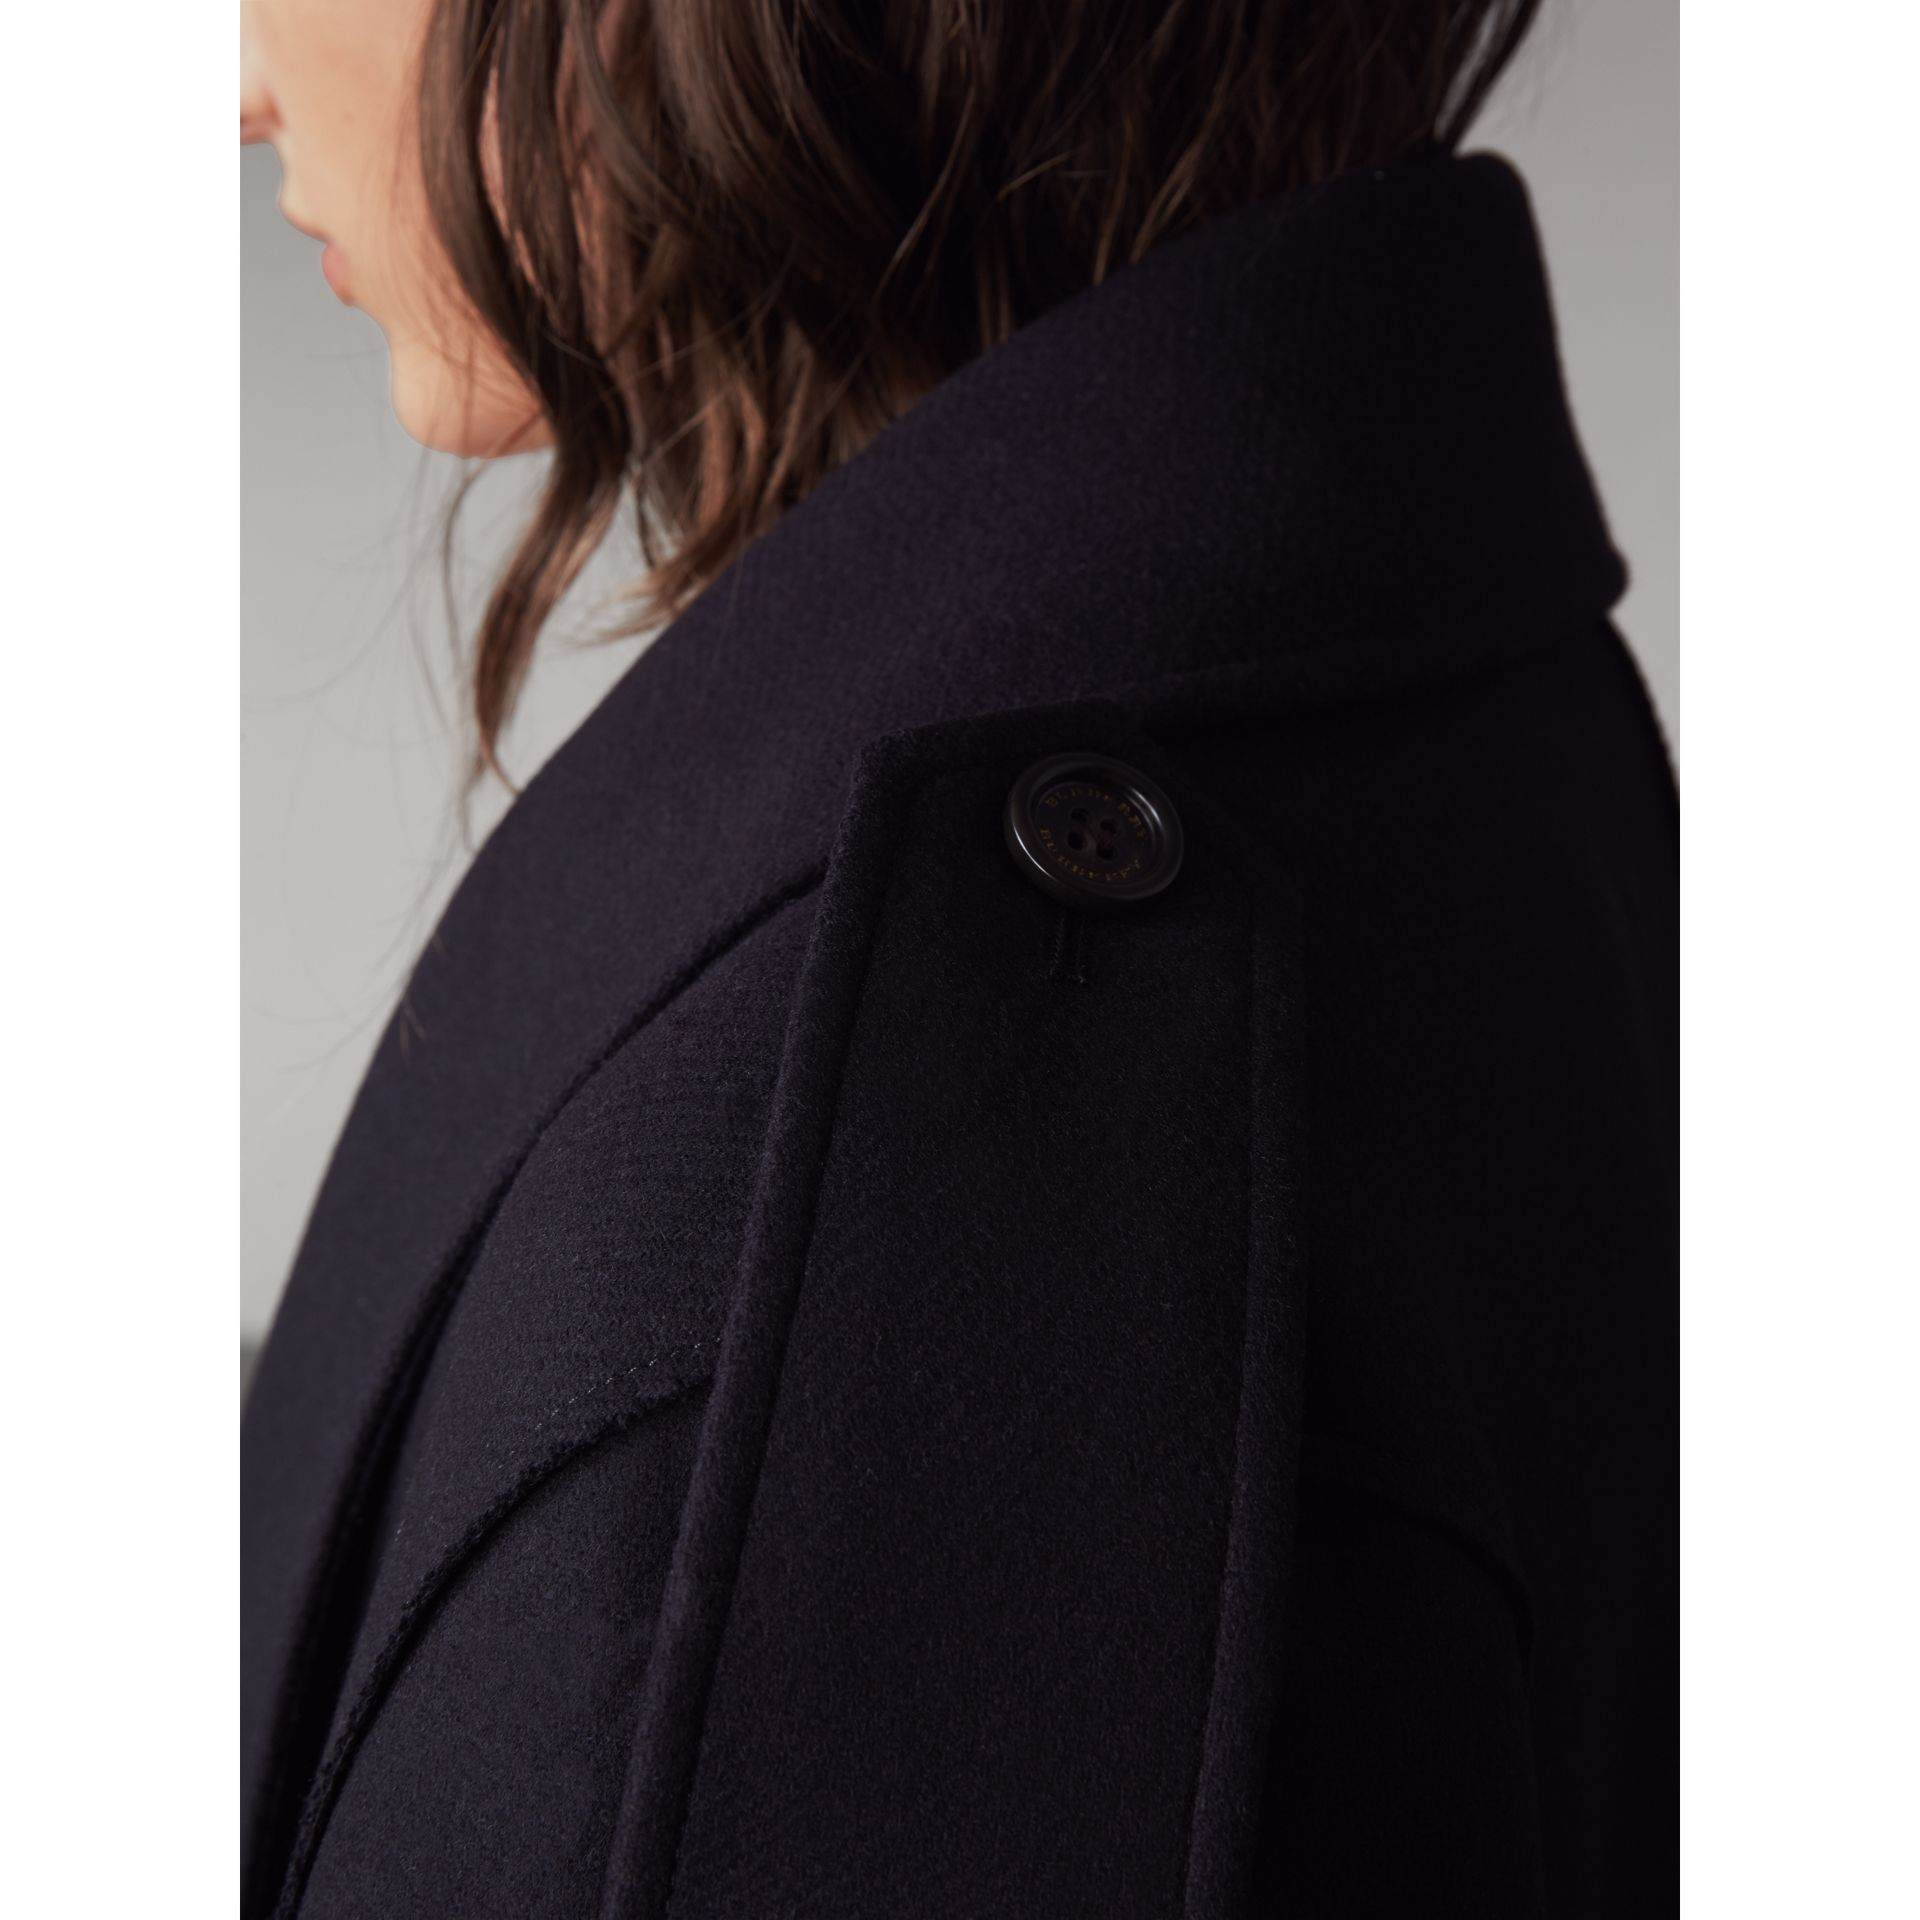 Wool Cashmere Blend Military Cape in True Navy - Women | Burberry - gallery image 2